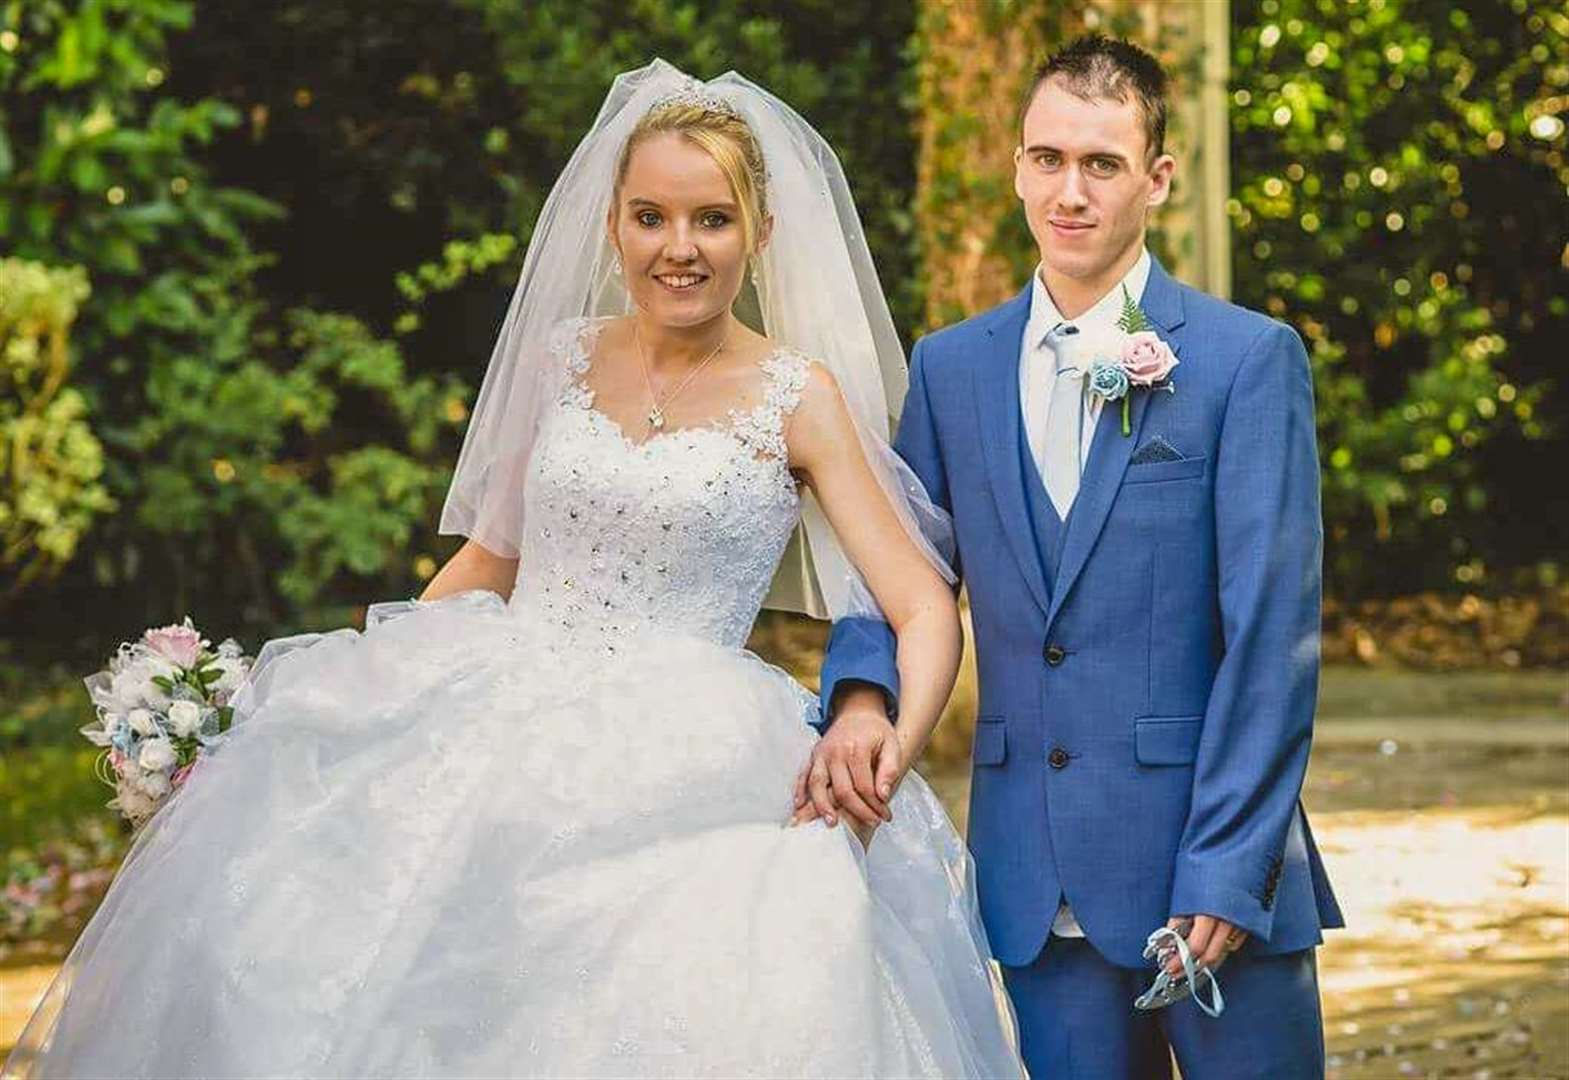 Fenland newly-weds in IVF crowdfunding bid - they need £10,000 because Cambridgeshire does not offer it